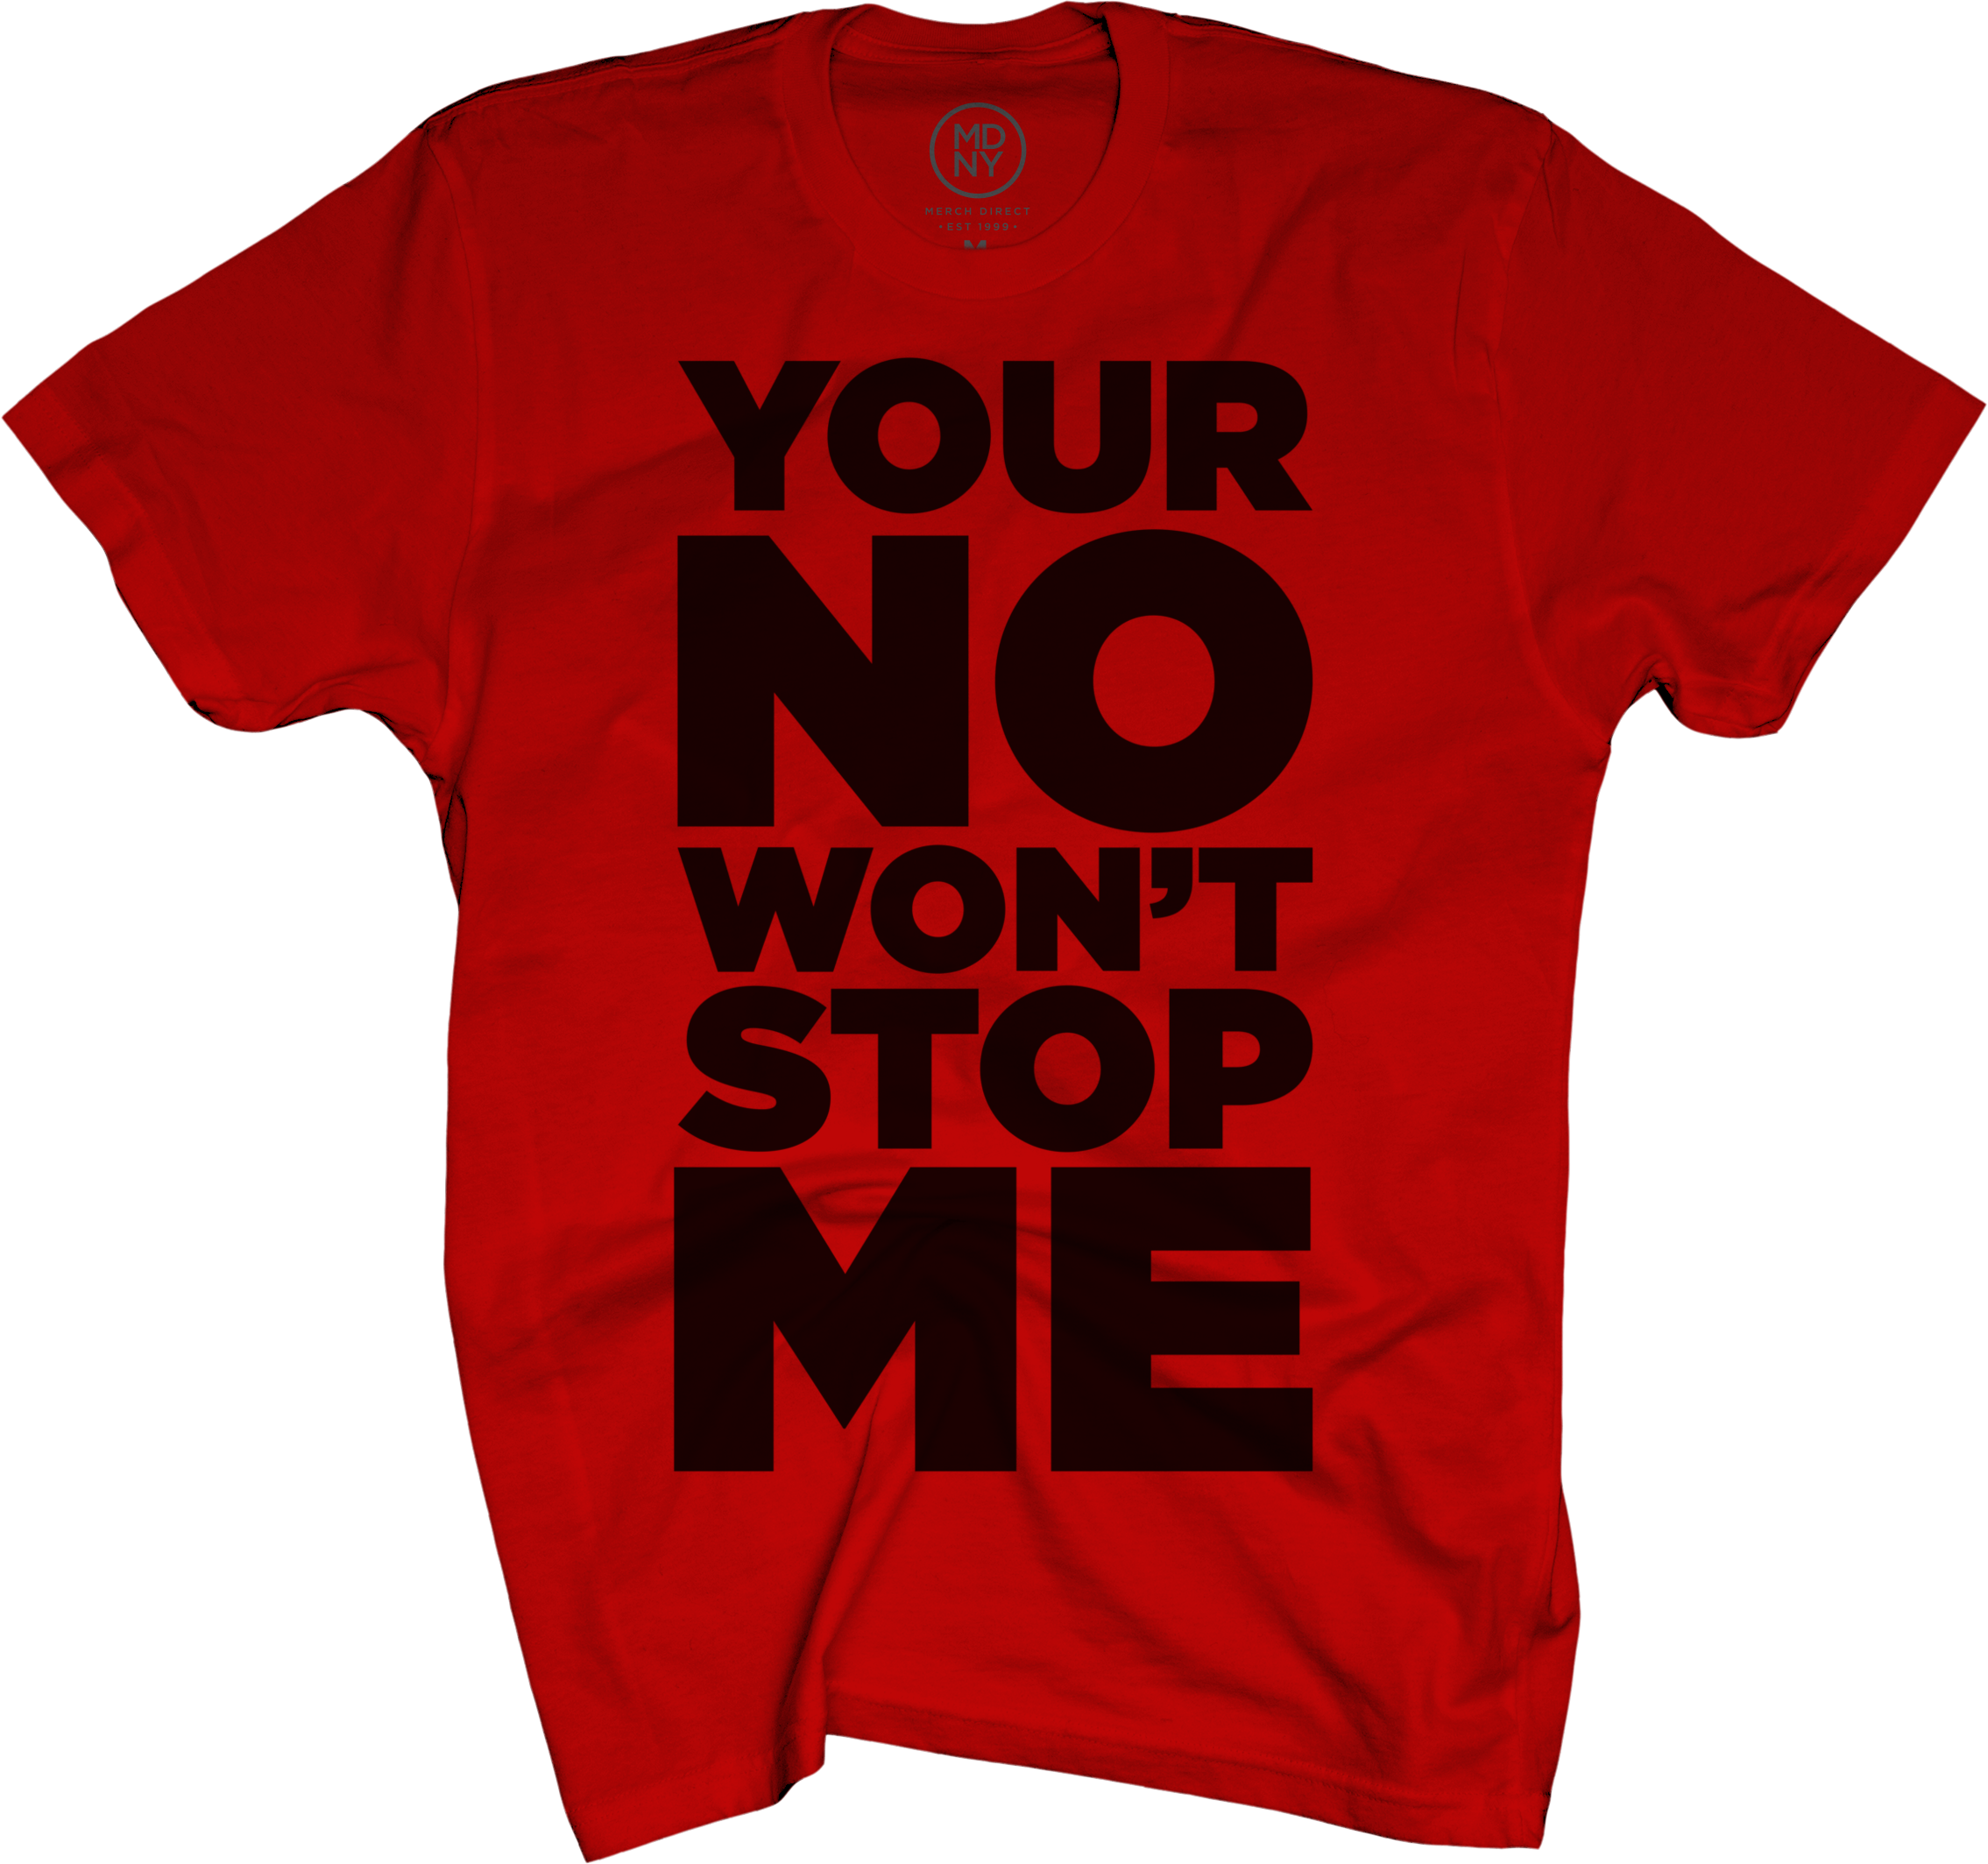 Your No Won't Stop Me on Red T-Shirt